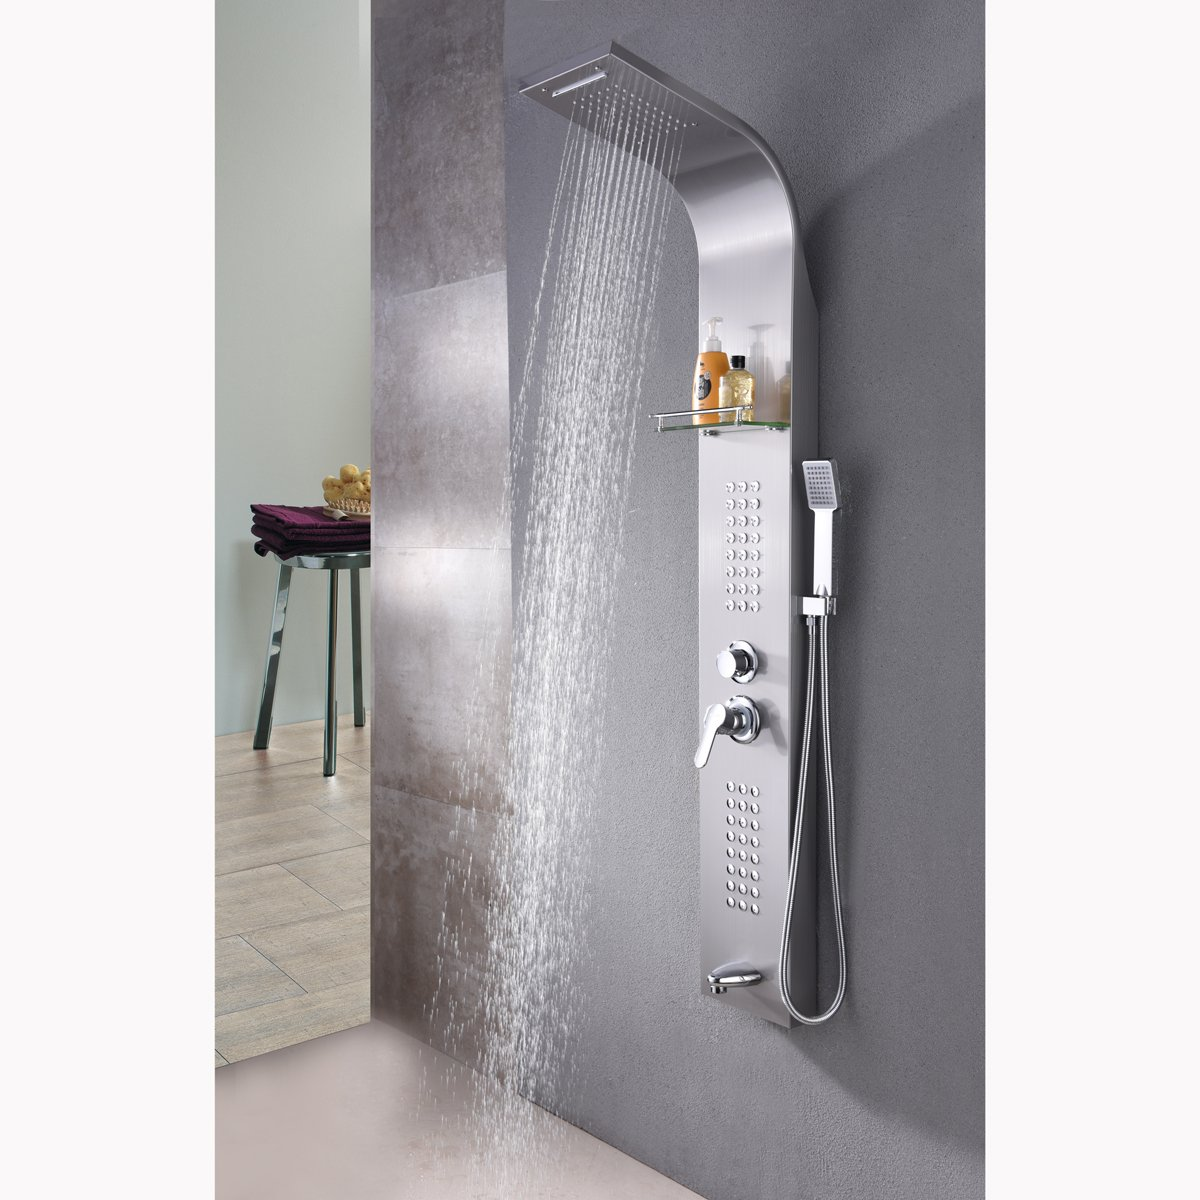 oofay shower faucet set stainless steel brushed nickel bathroom shower tower panel system with rainfall head waterfall shower handhel shower - Shower Tower